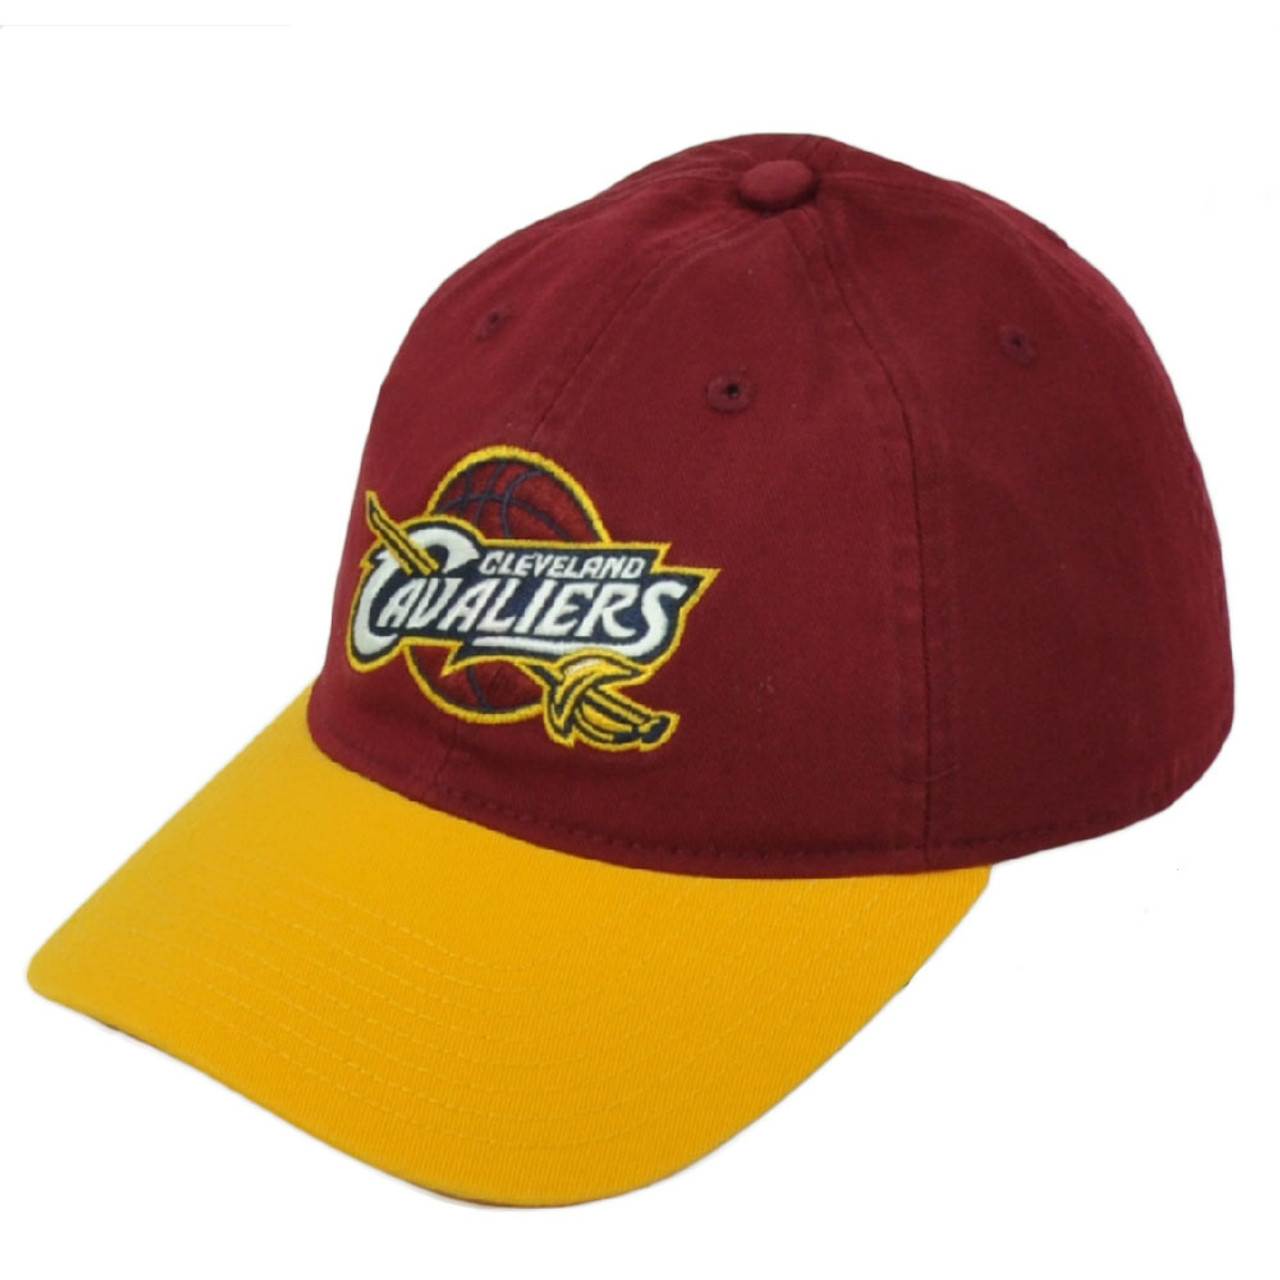 half off 6778d 8aa18 NBA Cleveland Cavalier Slouch Adjustable Hat Cap Snapback Burgundy Yellow  Cavs - Cap Store Online.com